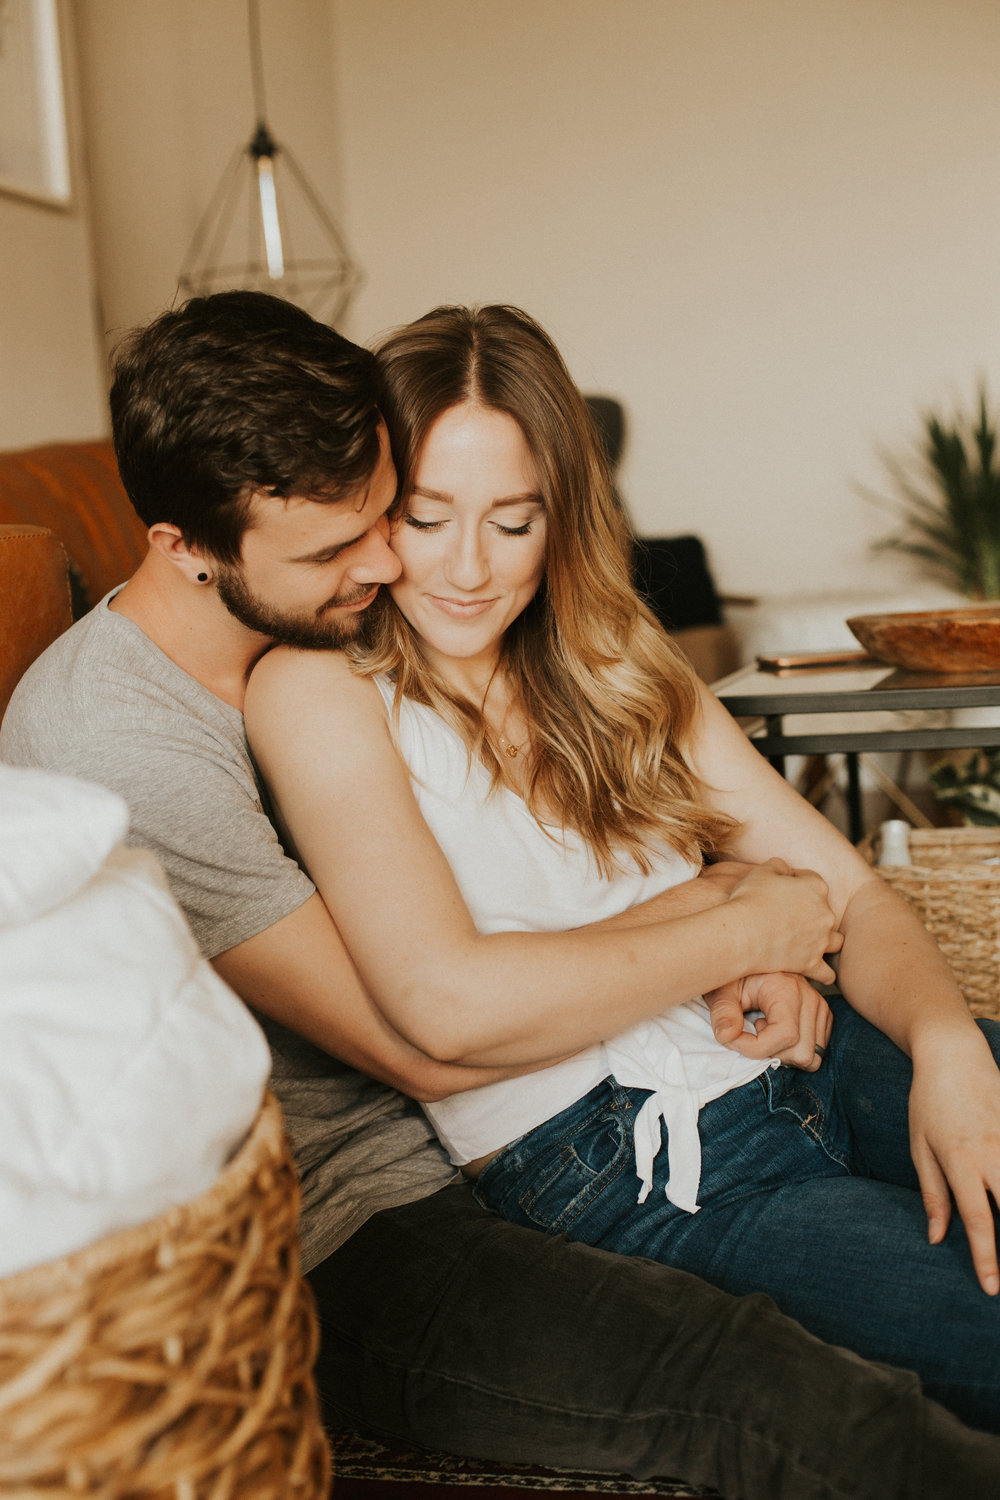 Kyle & Macey   Cozy in home session